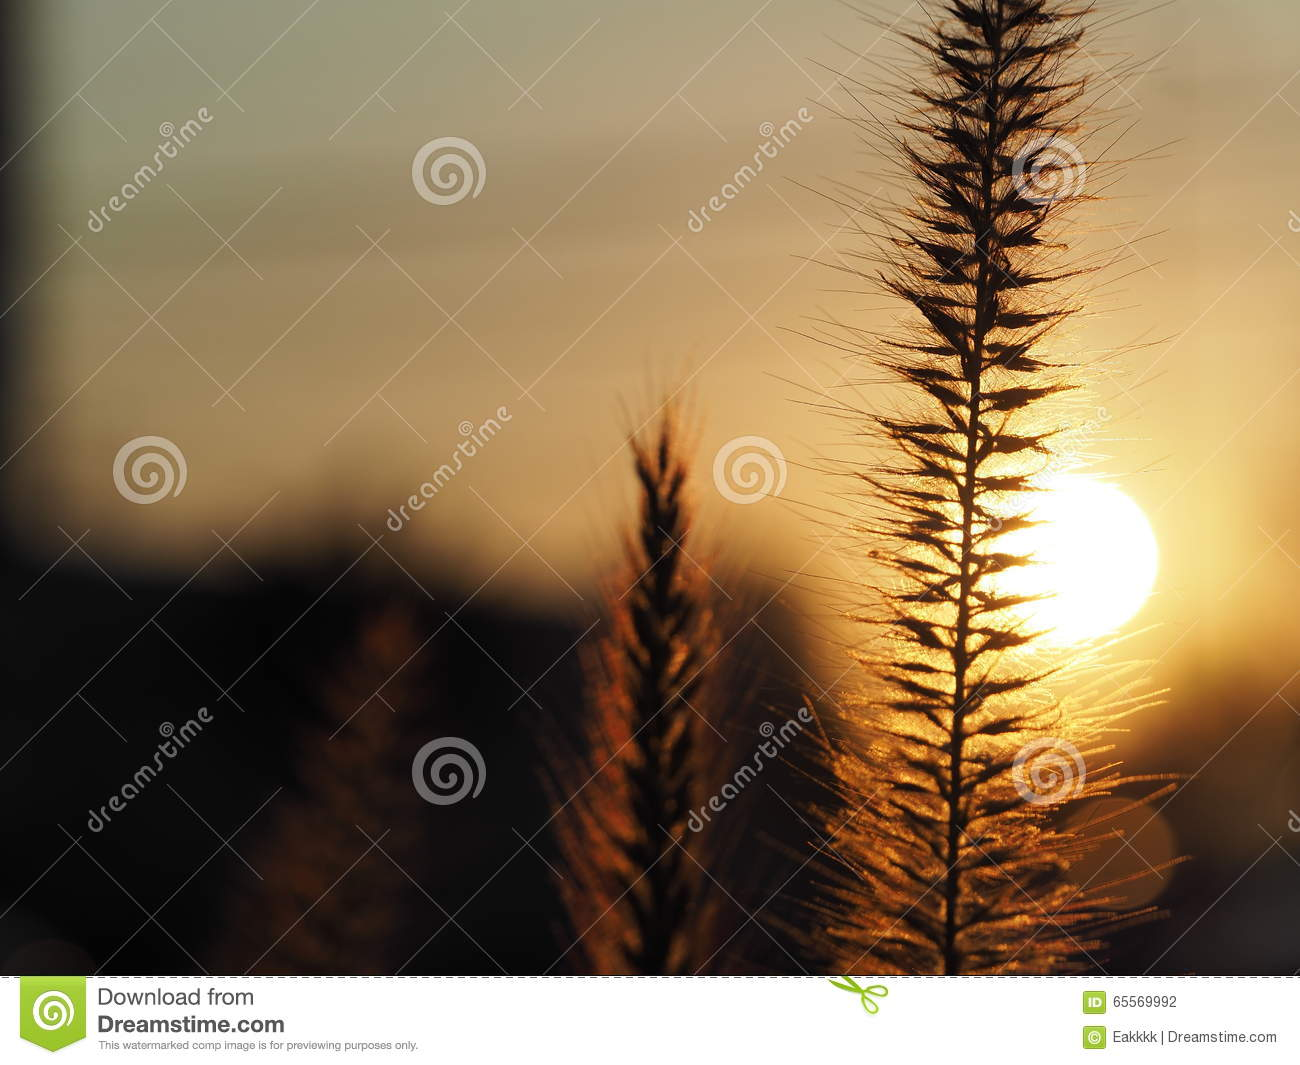 Sunset/Grass flower with sunset light background